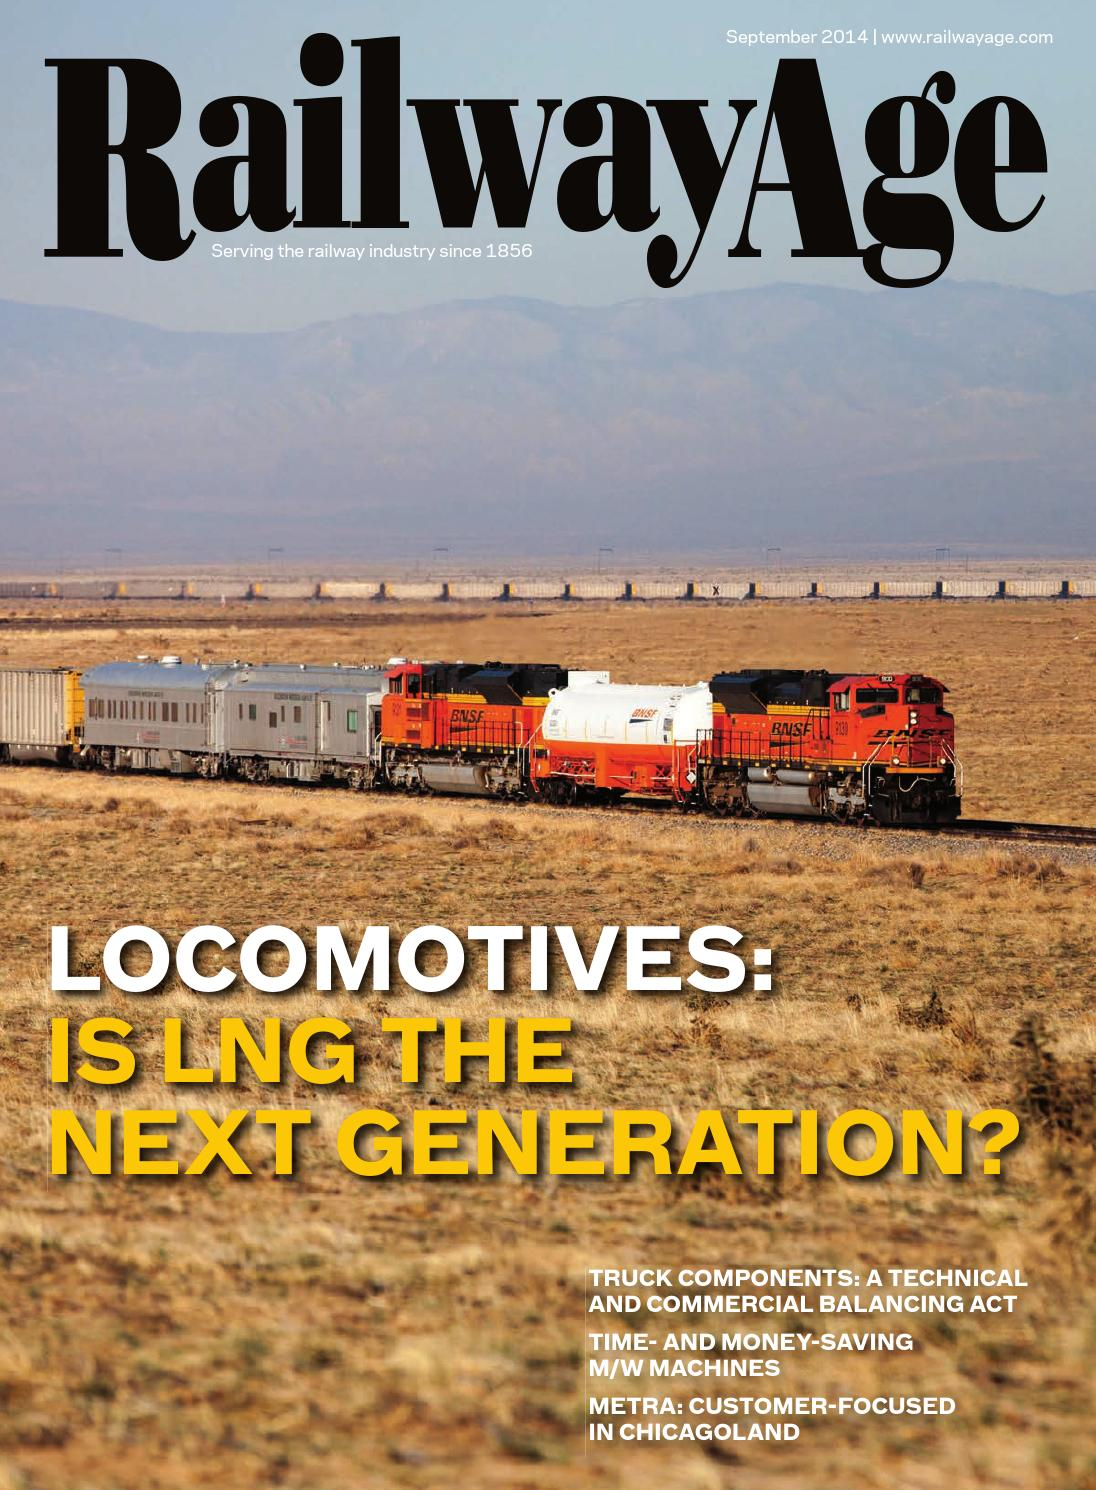 September 2014 Railway Age By Issuu My House Has A Generator Transfer Switch Protran 30310b Attached To